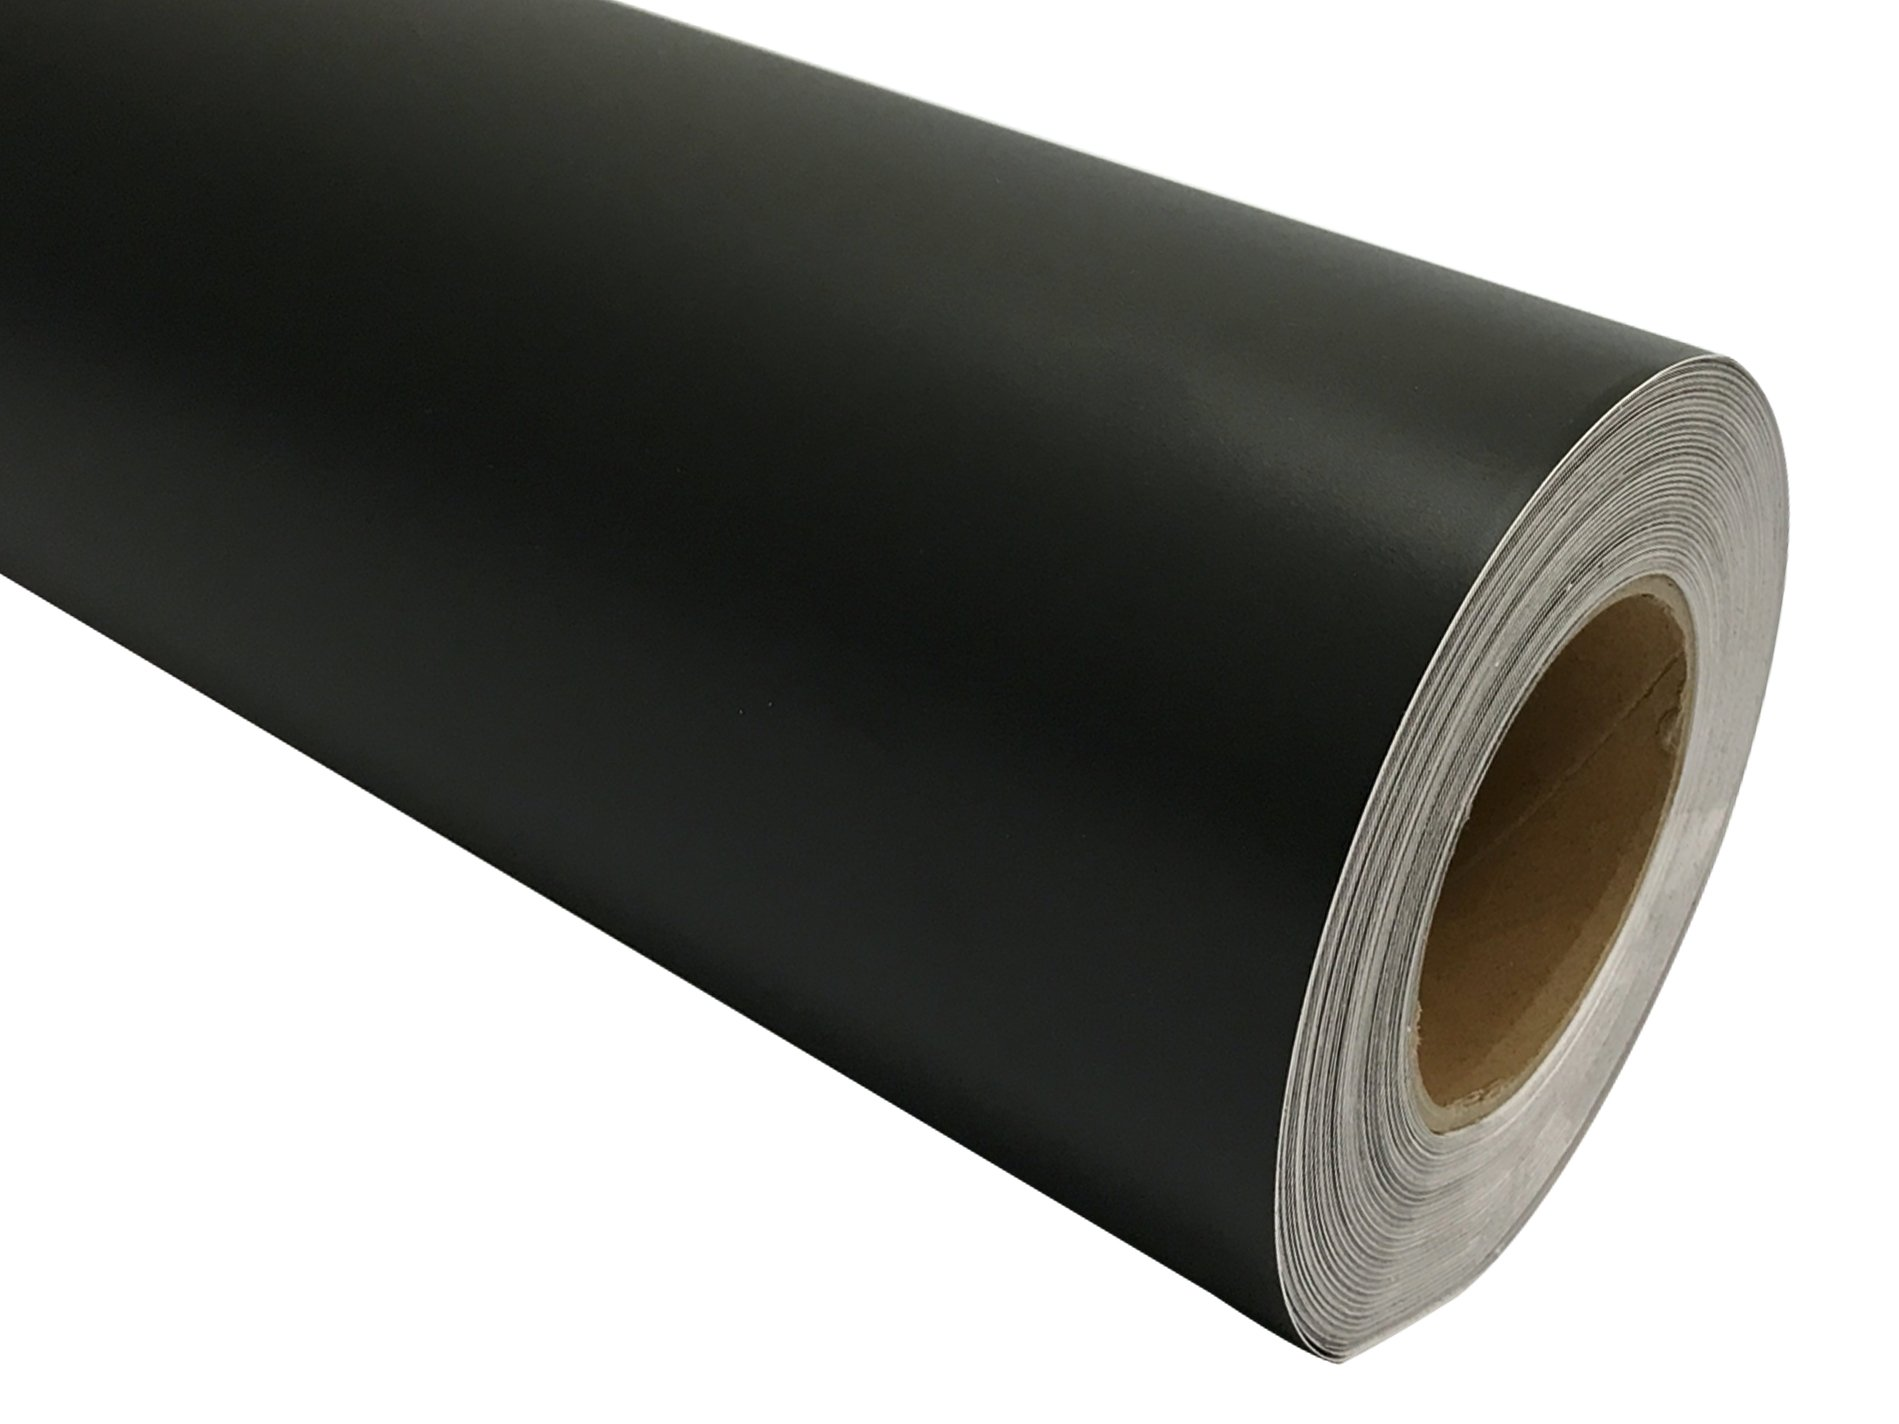 12'' x 150 ft (50YD) Roll of Matte Black Repositionable Adhesive-Backed Vinyl for Craft Cutters, Punches and Vinyl Sign Cutters